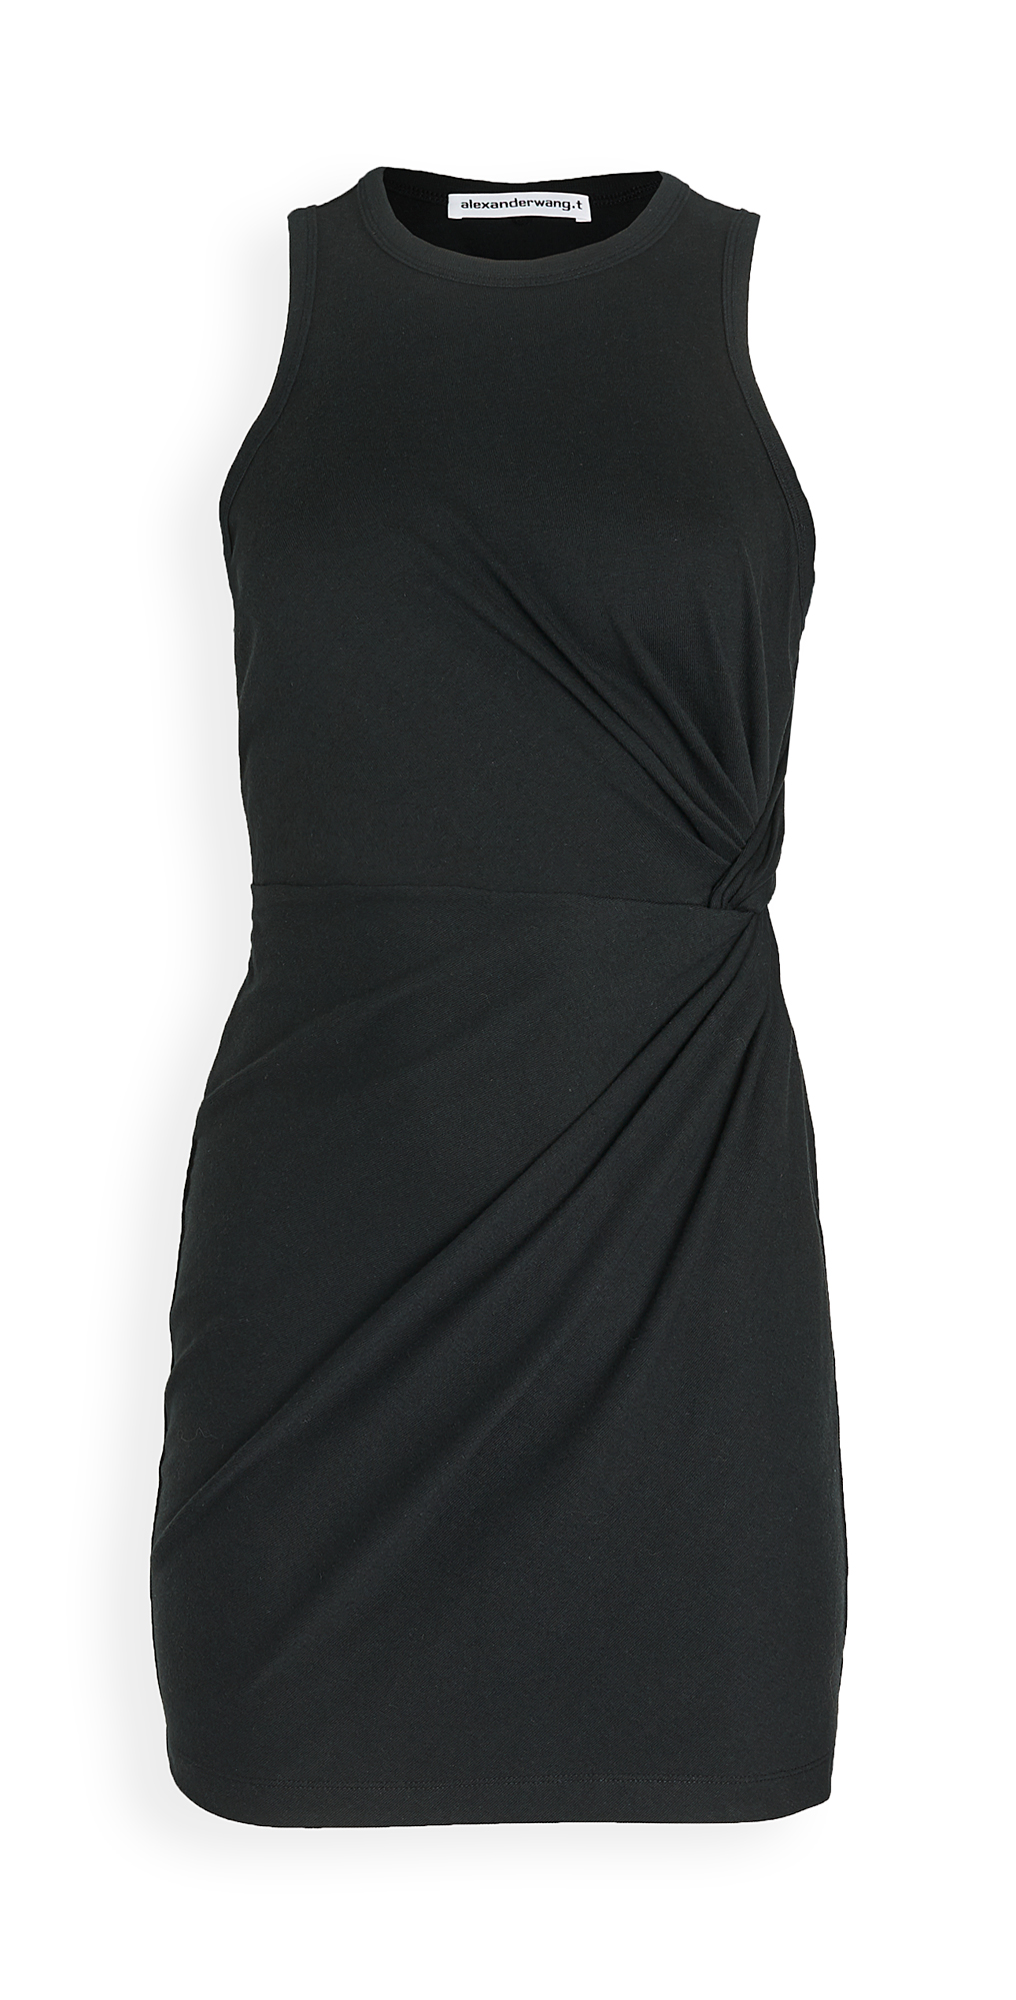 alexanderwang.t Heavy Soft Jersey Fitted Tank Dress